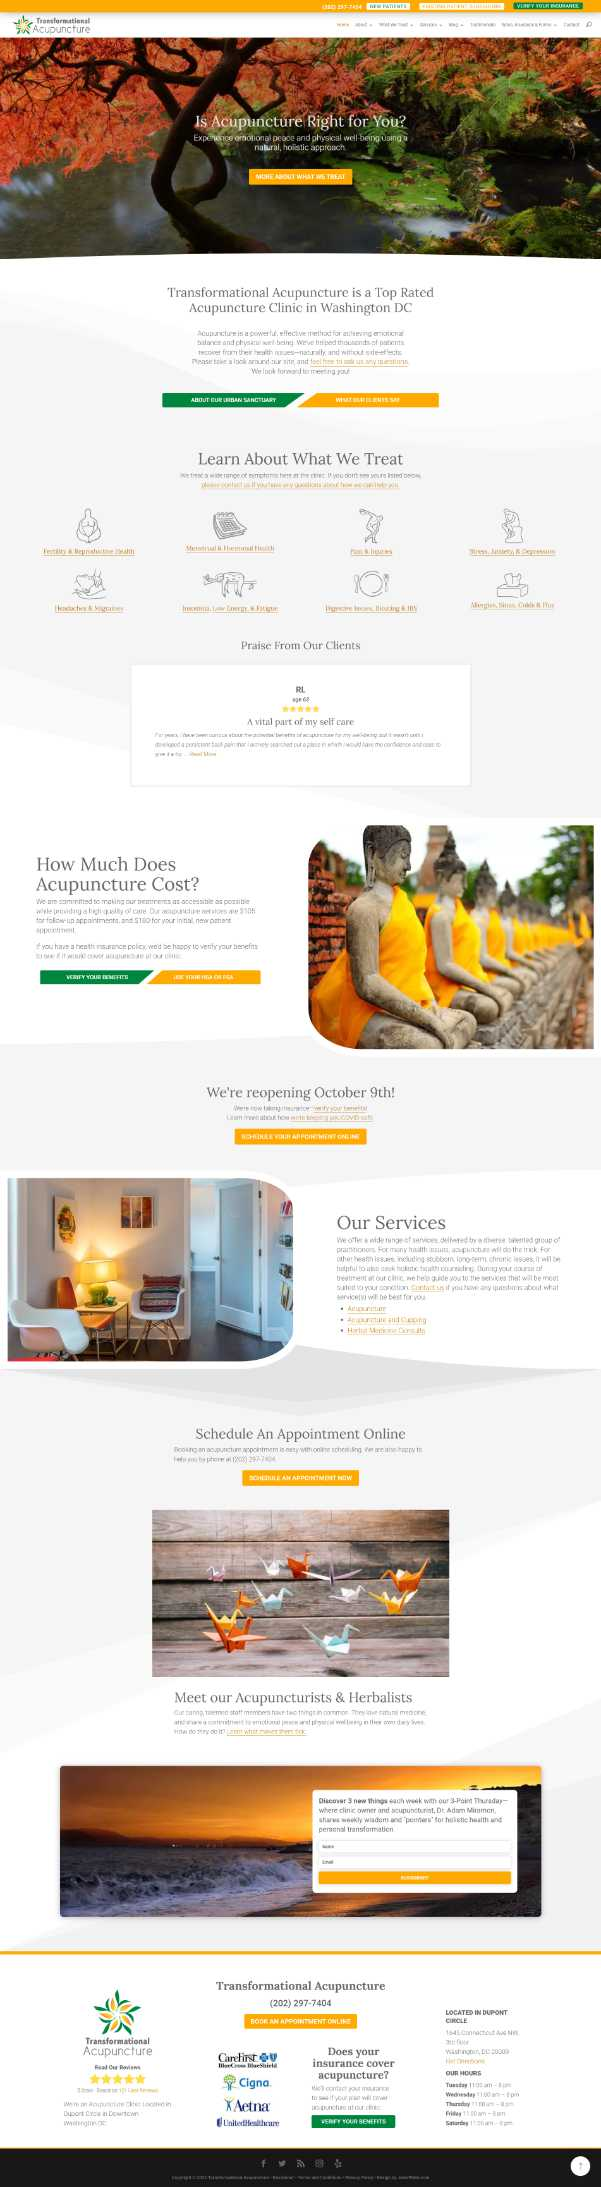 Screenshot of Transformational Acupuncture's home page